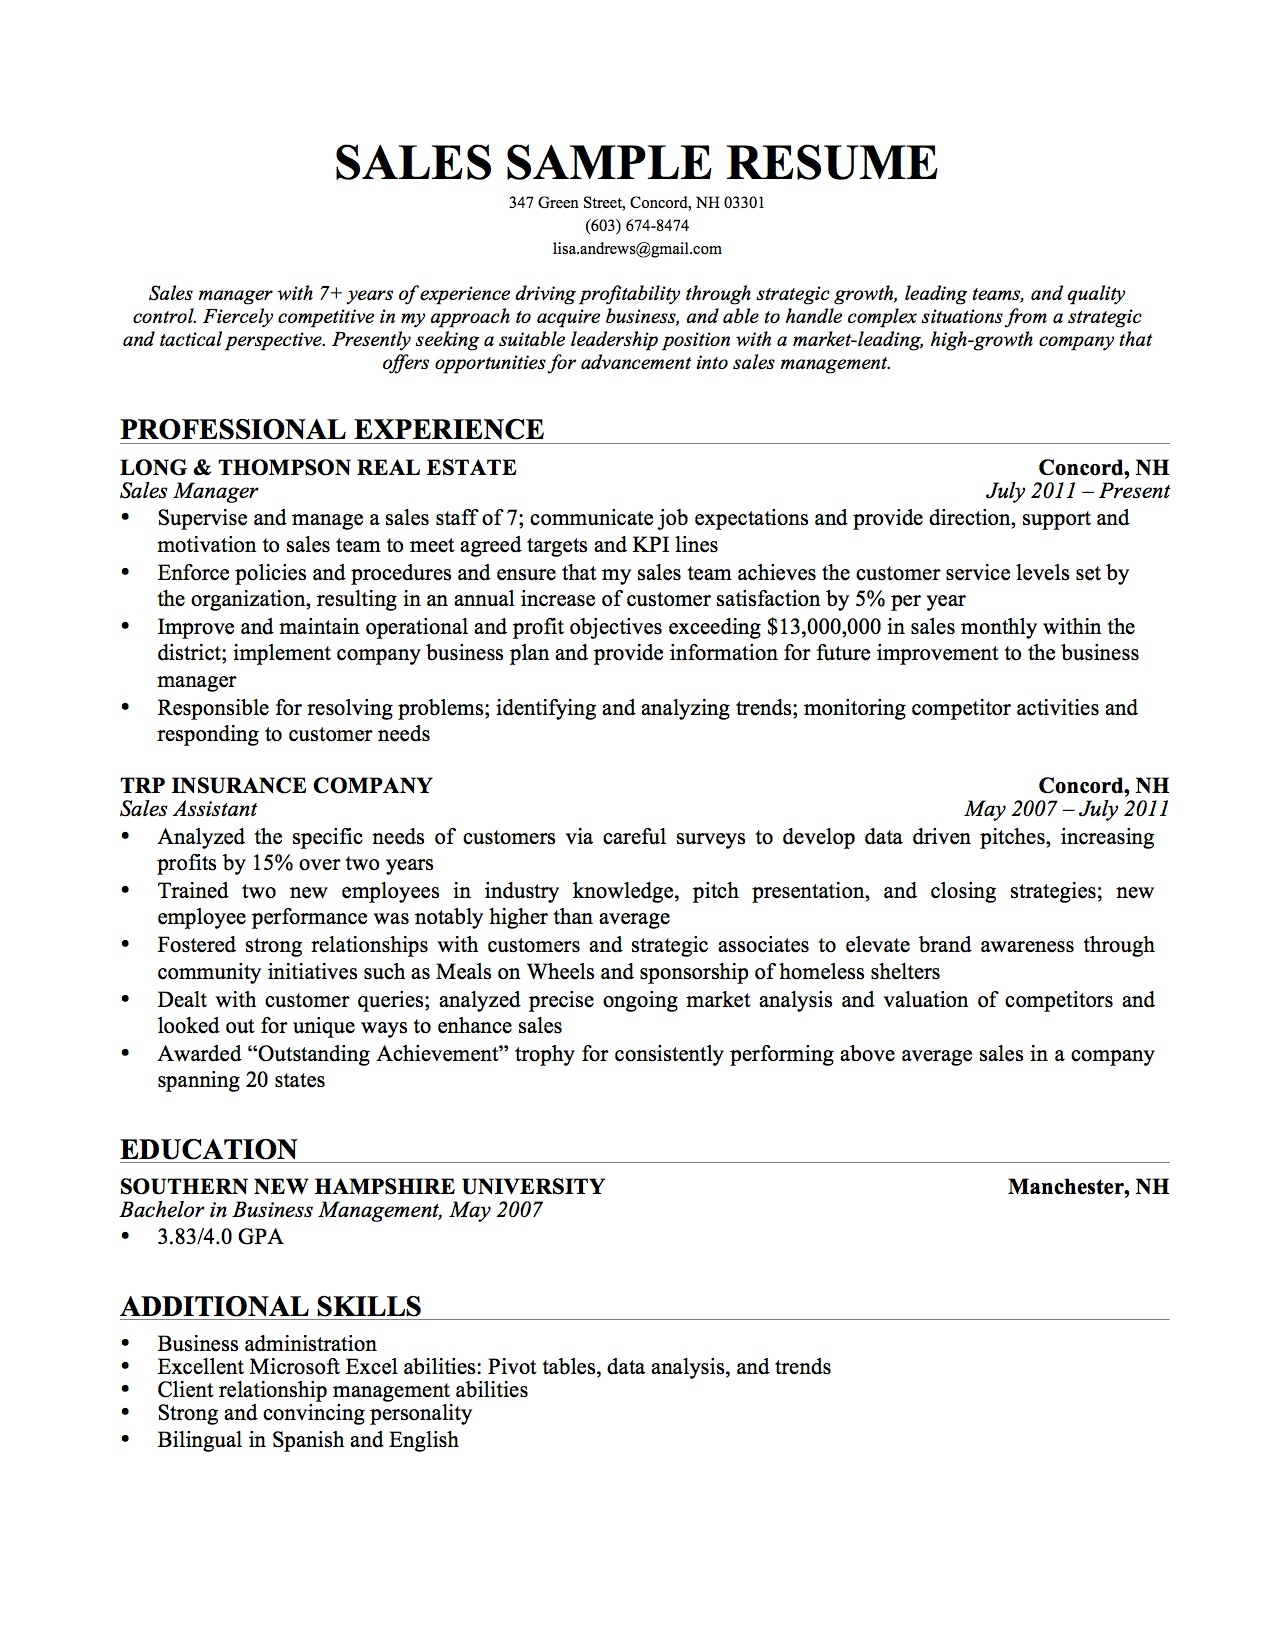 resume job description for inside sales how to write a sales resume retail sales associate cover